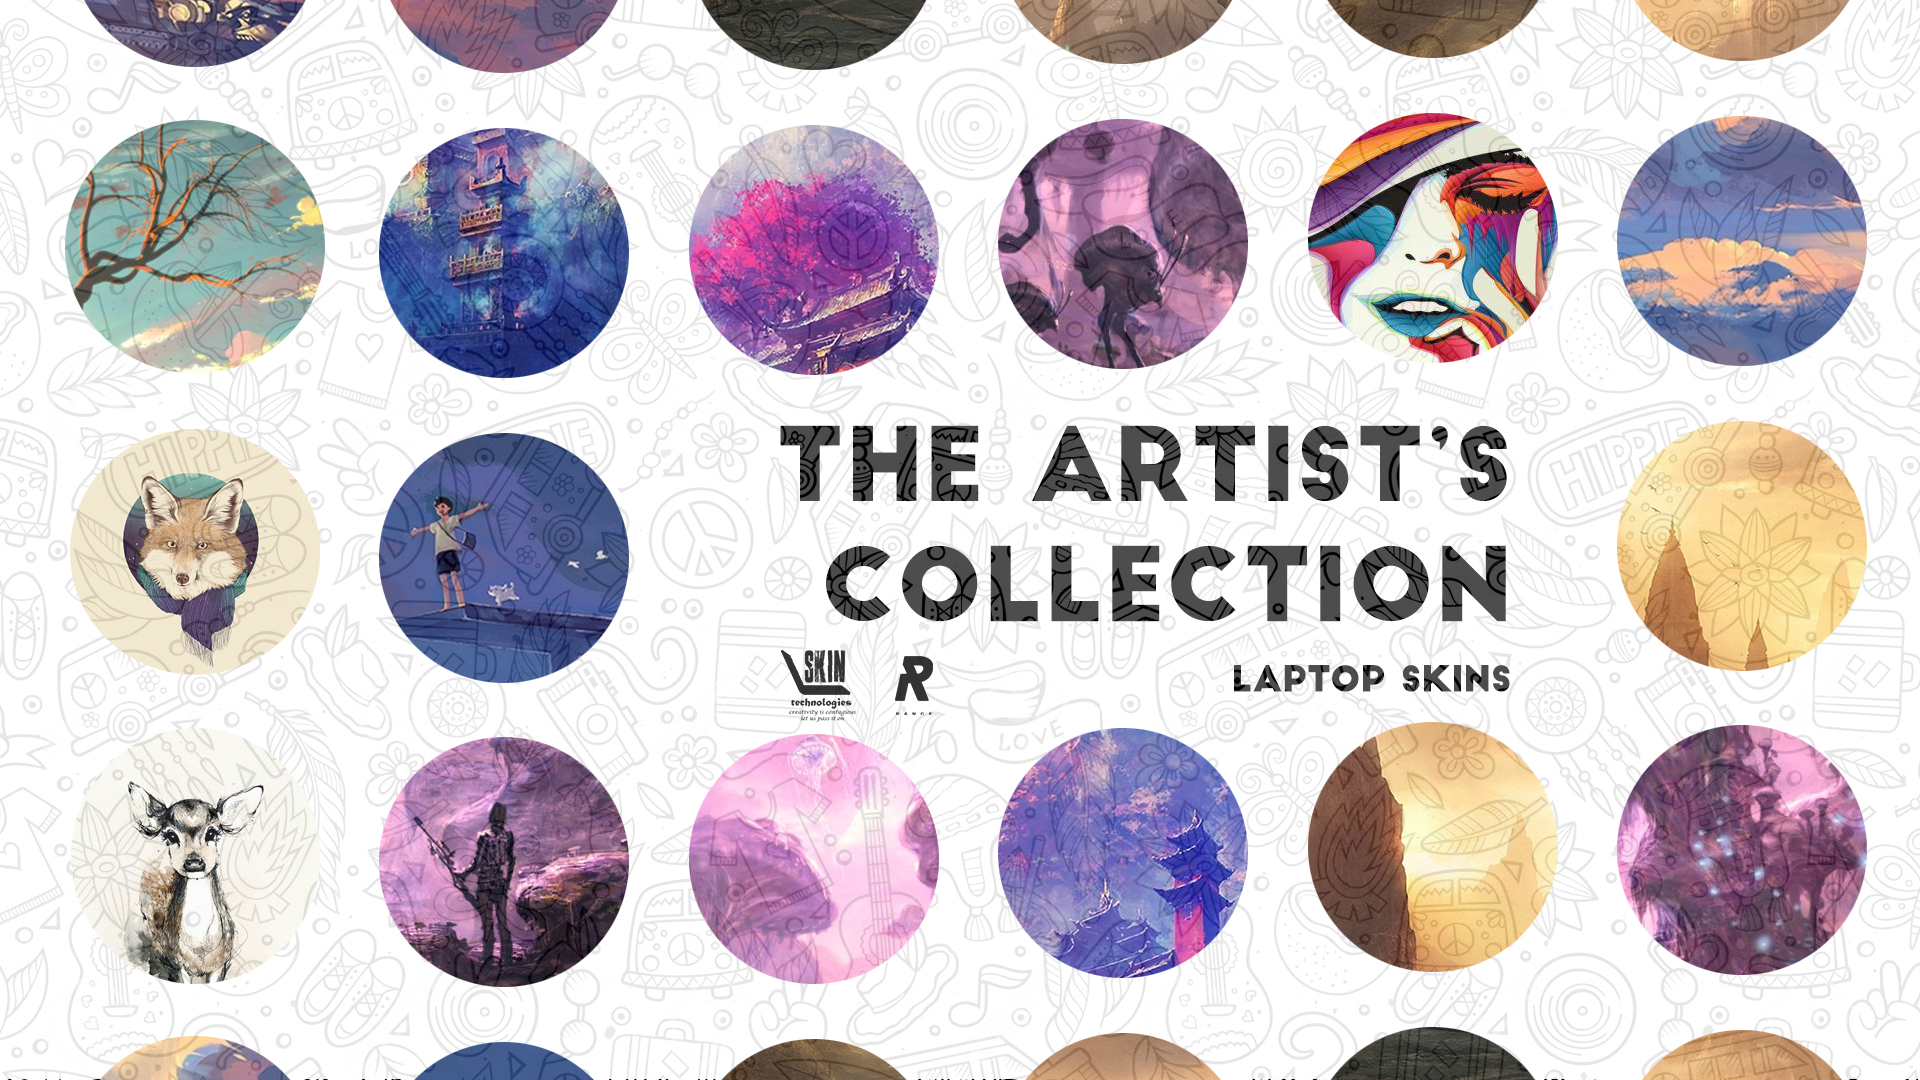 The Artist's Laptop Skins Collection